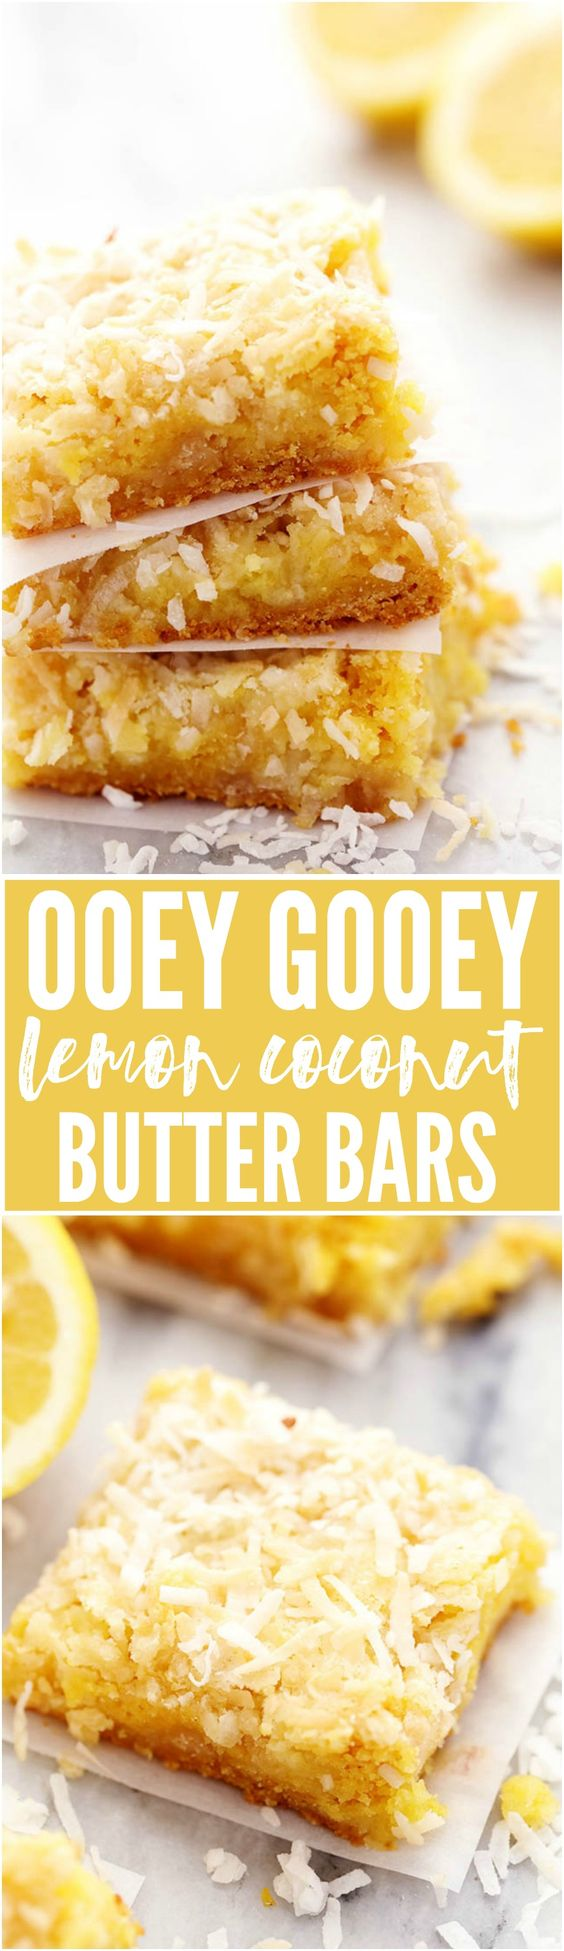 These bars are ooey and gooey and have a delicious lemon flavor! They are topped with a brown sugar butter coconut topping and are seriously AMAZING!